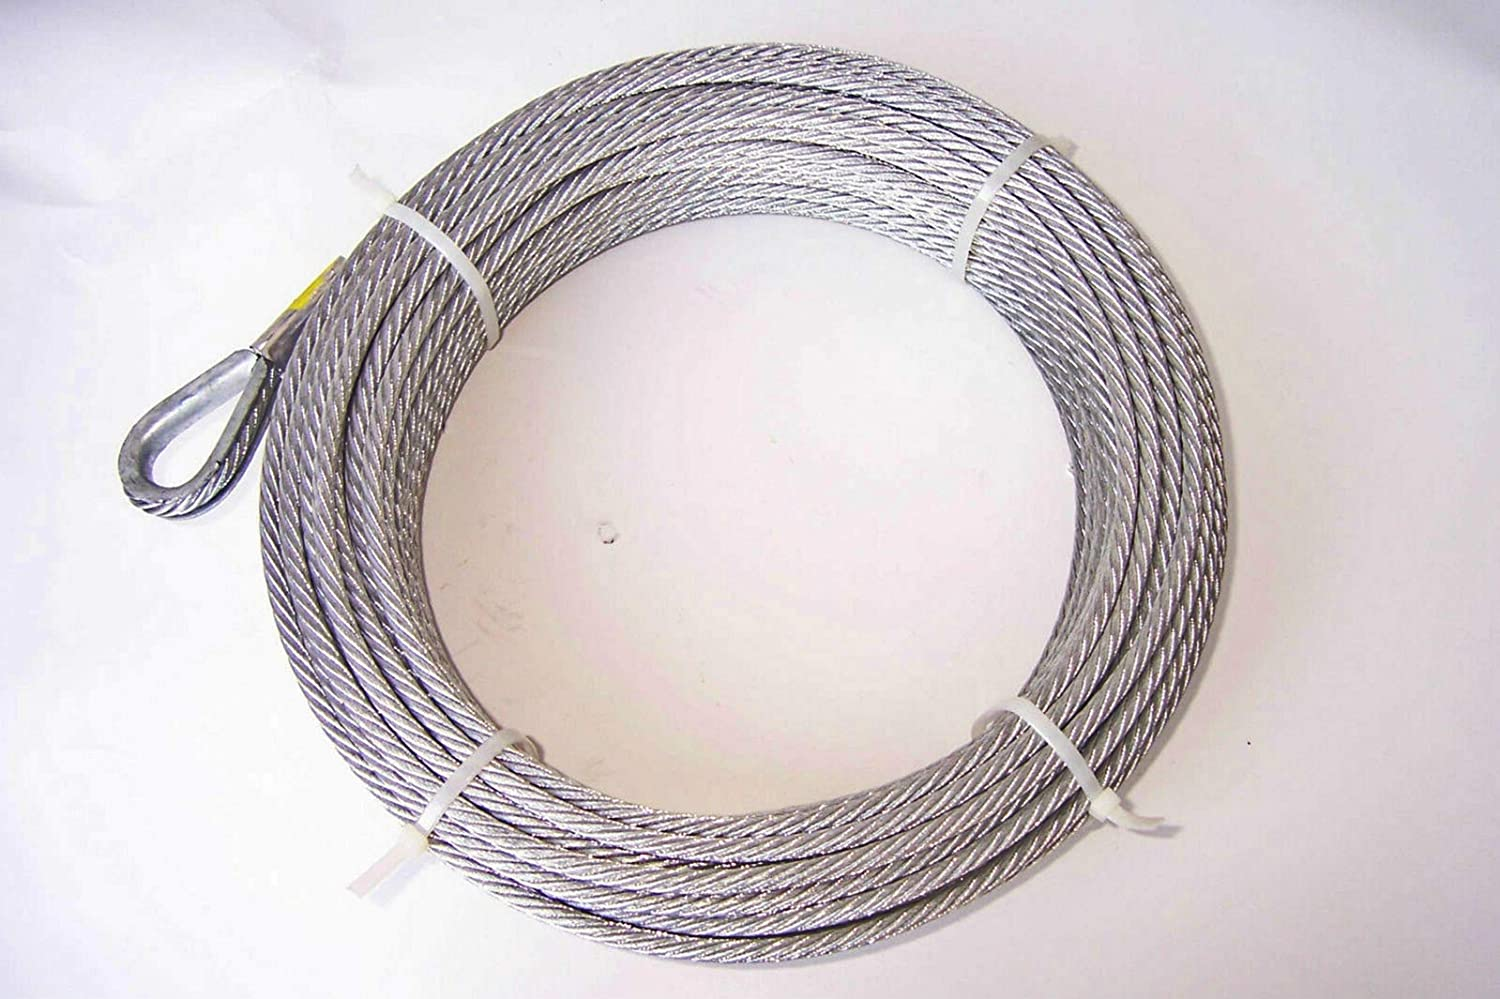 1/4 inch x 50 ft Galvanized Wire Rope Winch Cable 7x19 Core